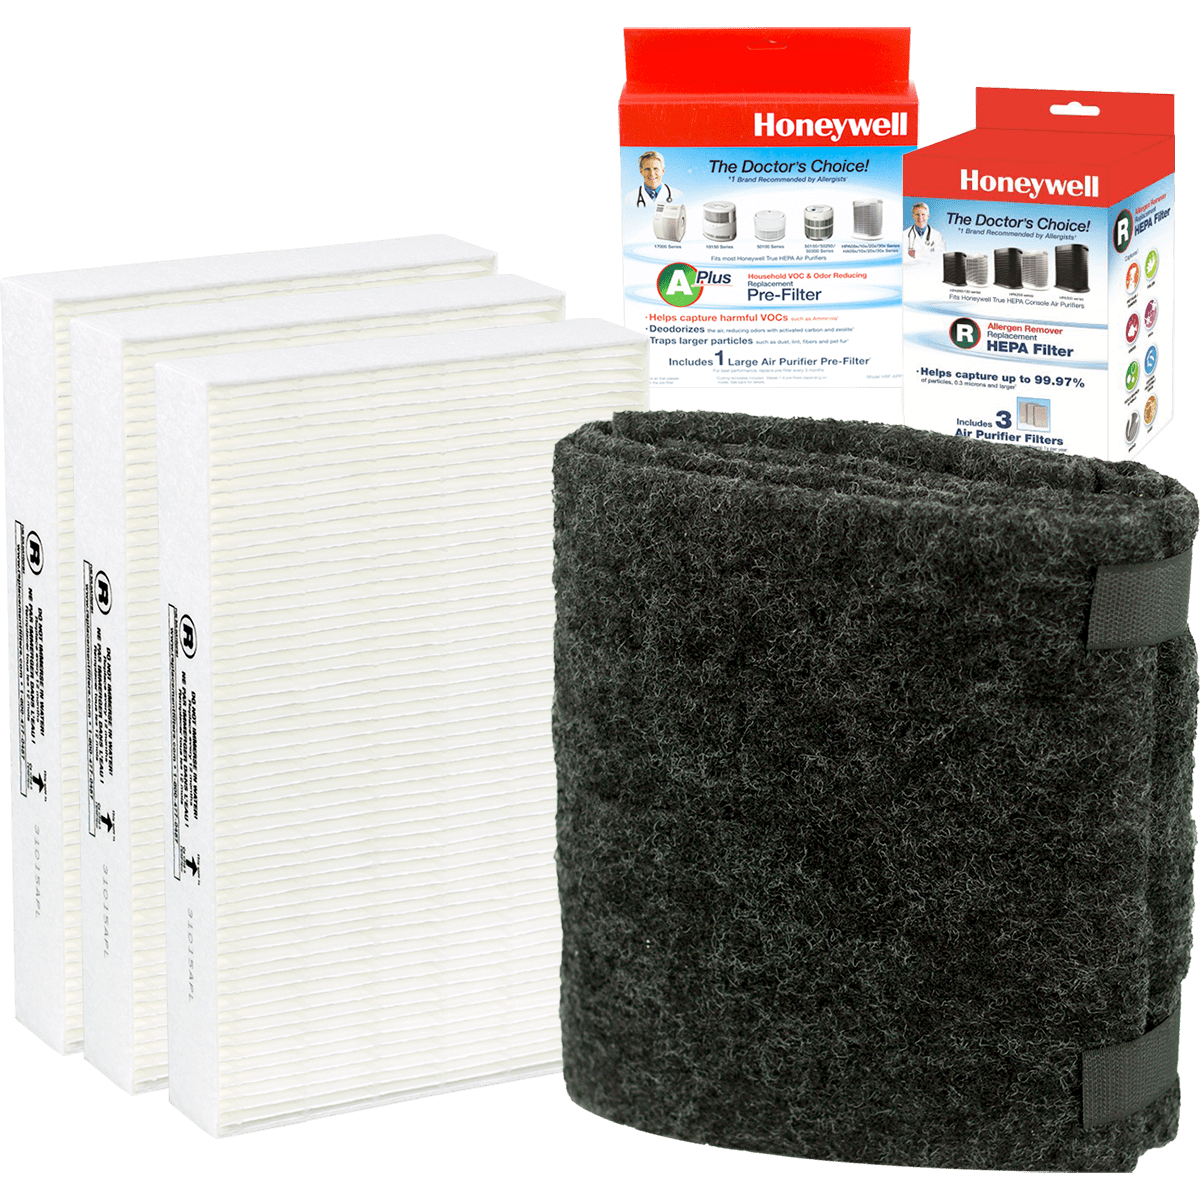 Honeywell HPA300 Air Purifier Filter Pack Value Kit Sylvane